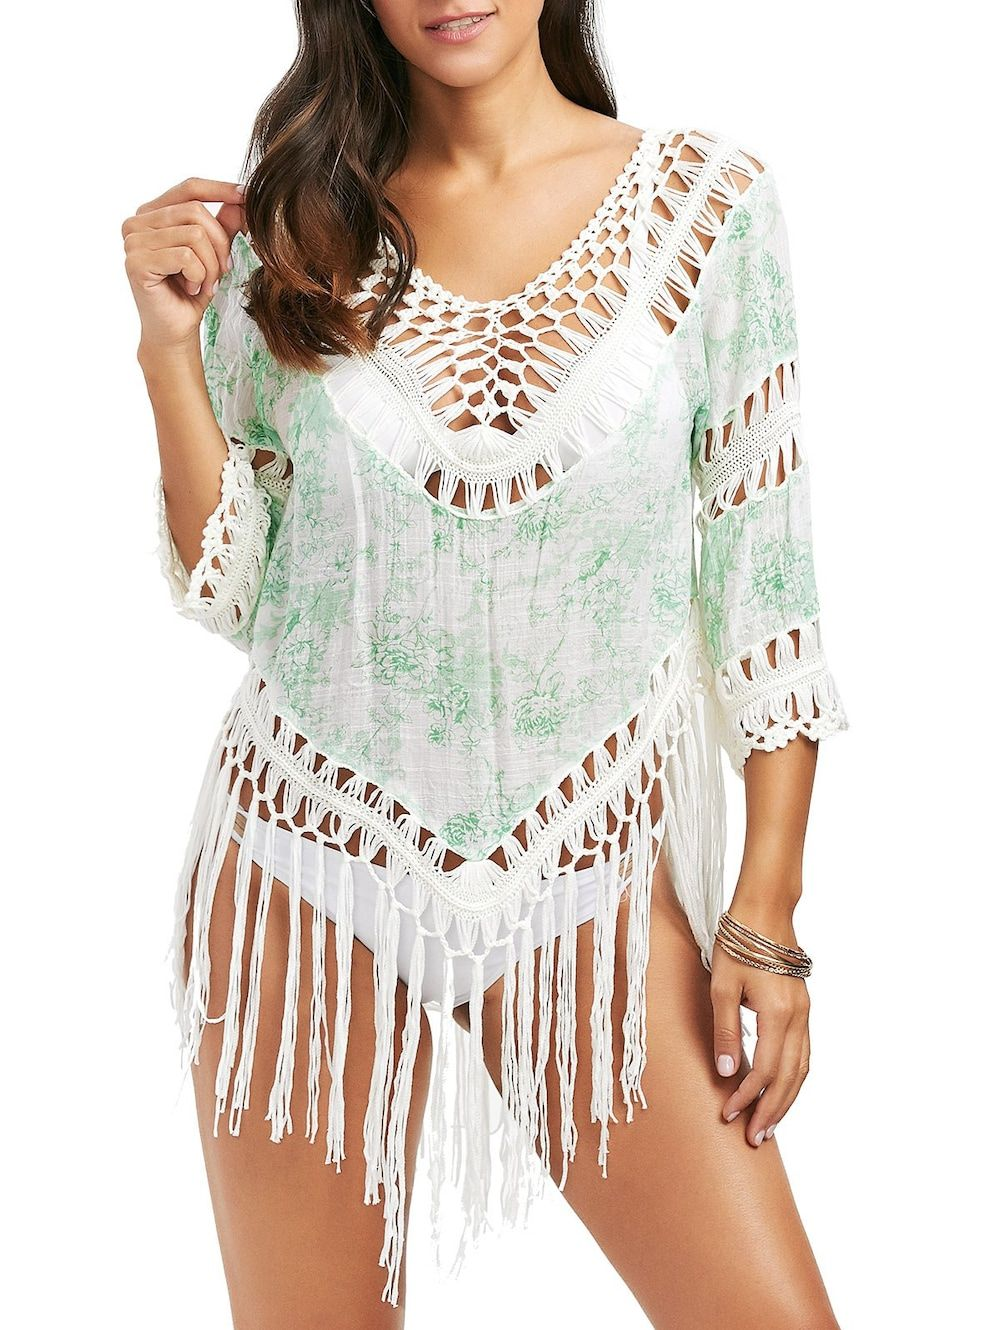 bca461a034f80 Flower Printing Irregular Sunscreen Cozy Cover Ups Swimsuits For Women  Cheap Best - NewChic · Crochet Panel Printed Tassel Cover Up - PALE GREEN  ONE SIZE